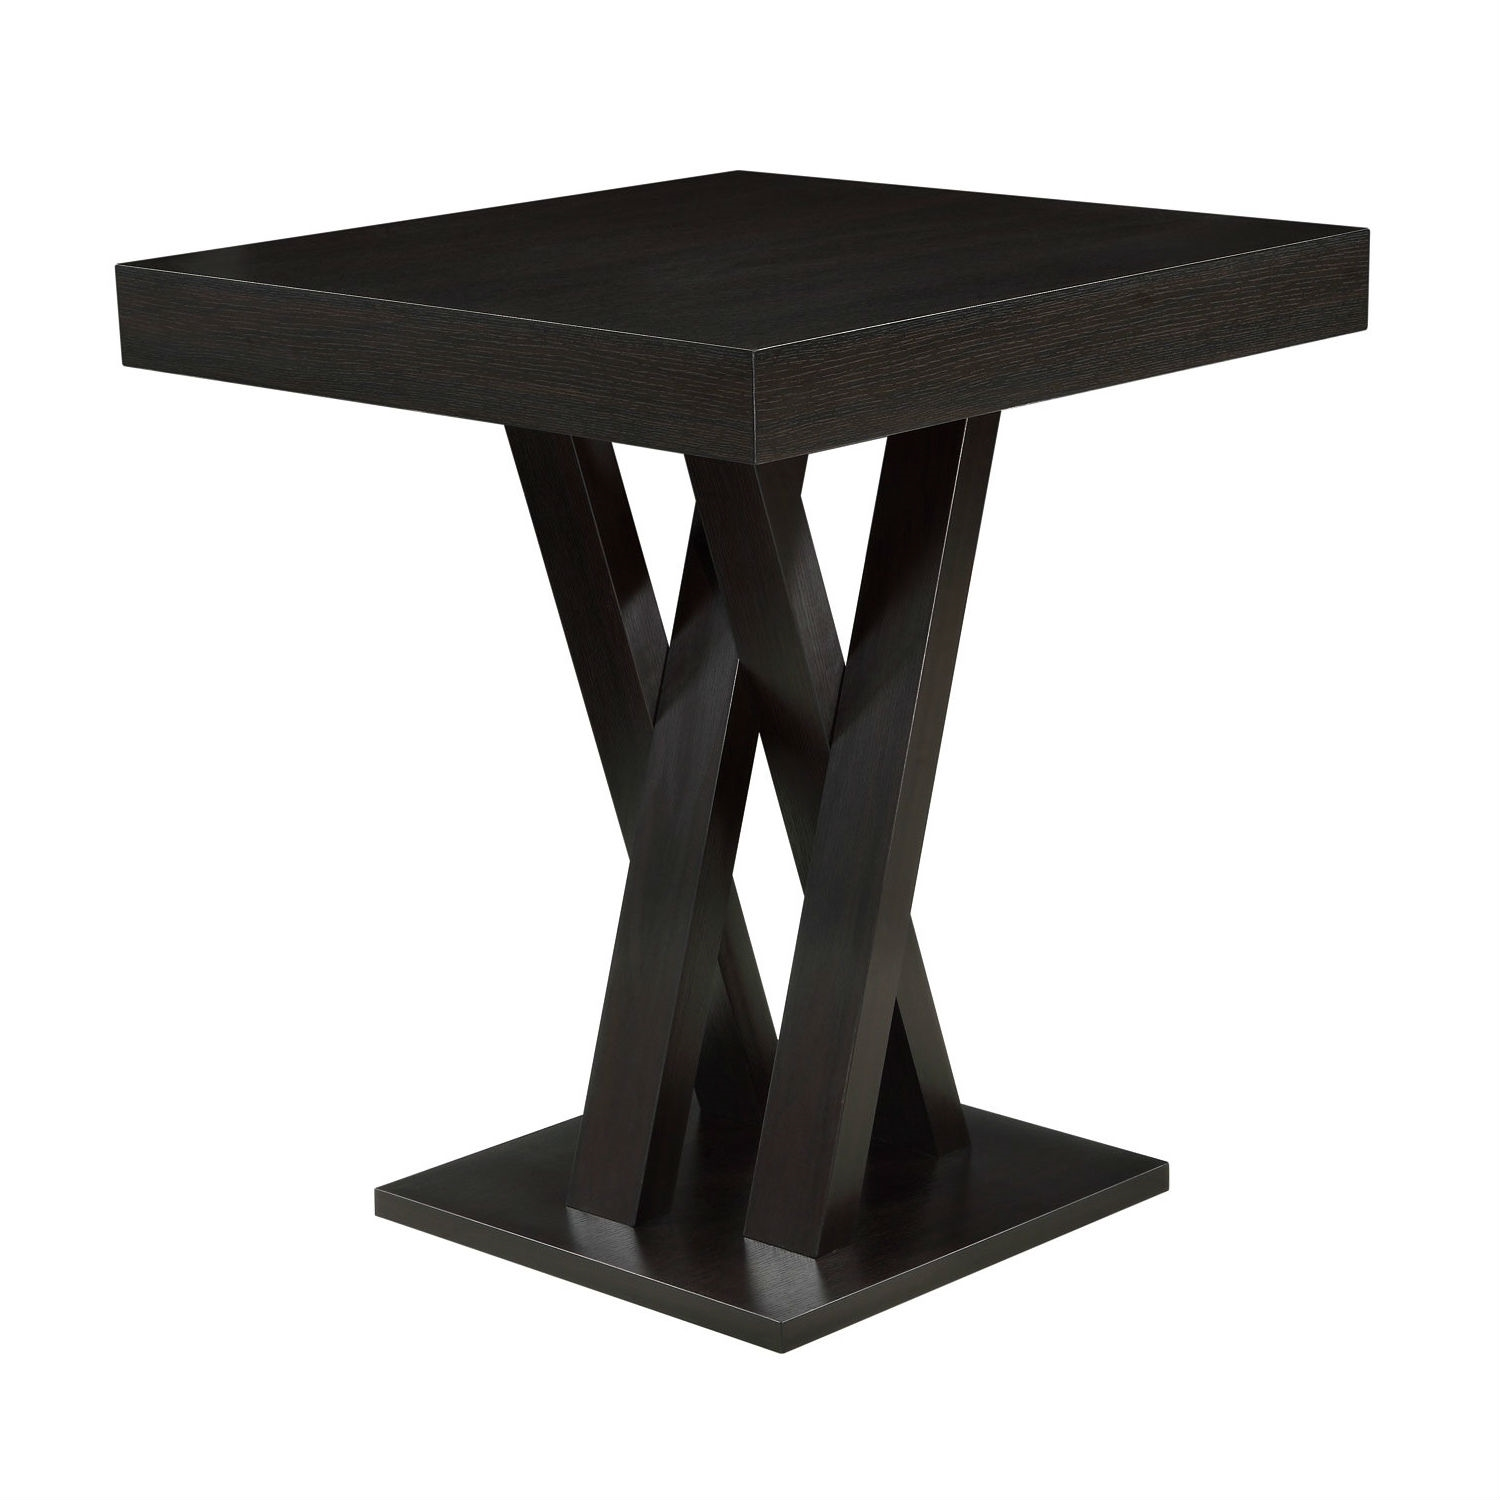 Modern 40 Inch High Square Dining Table